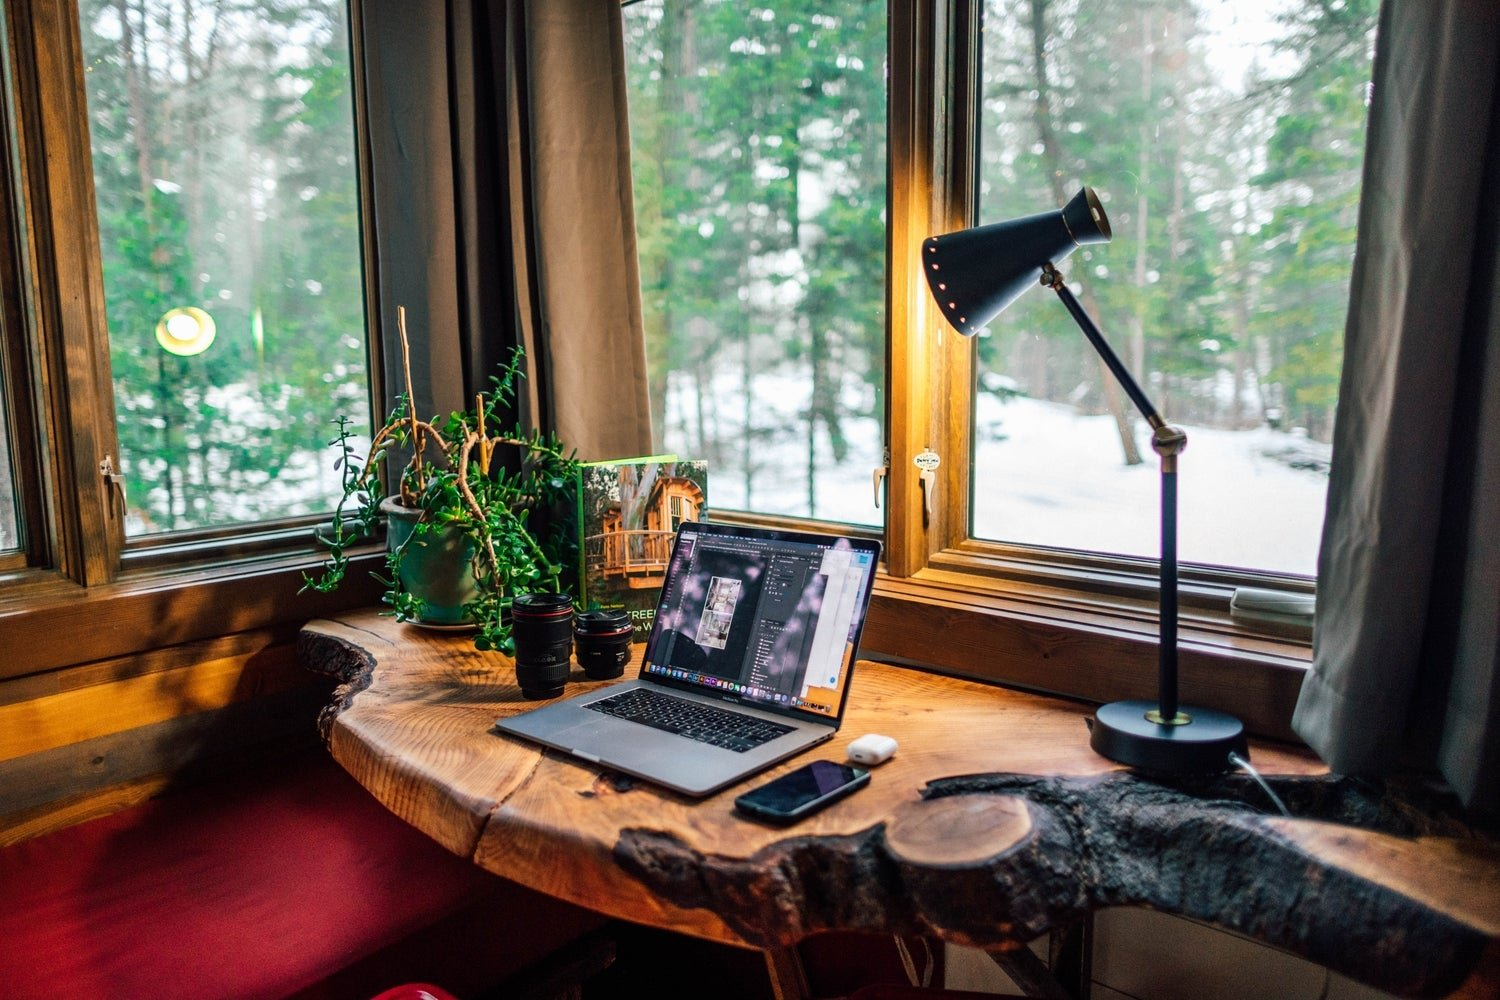 The best tips for working from home, from people who do it all the time